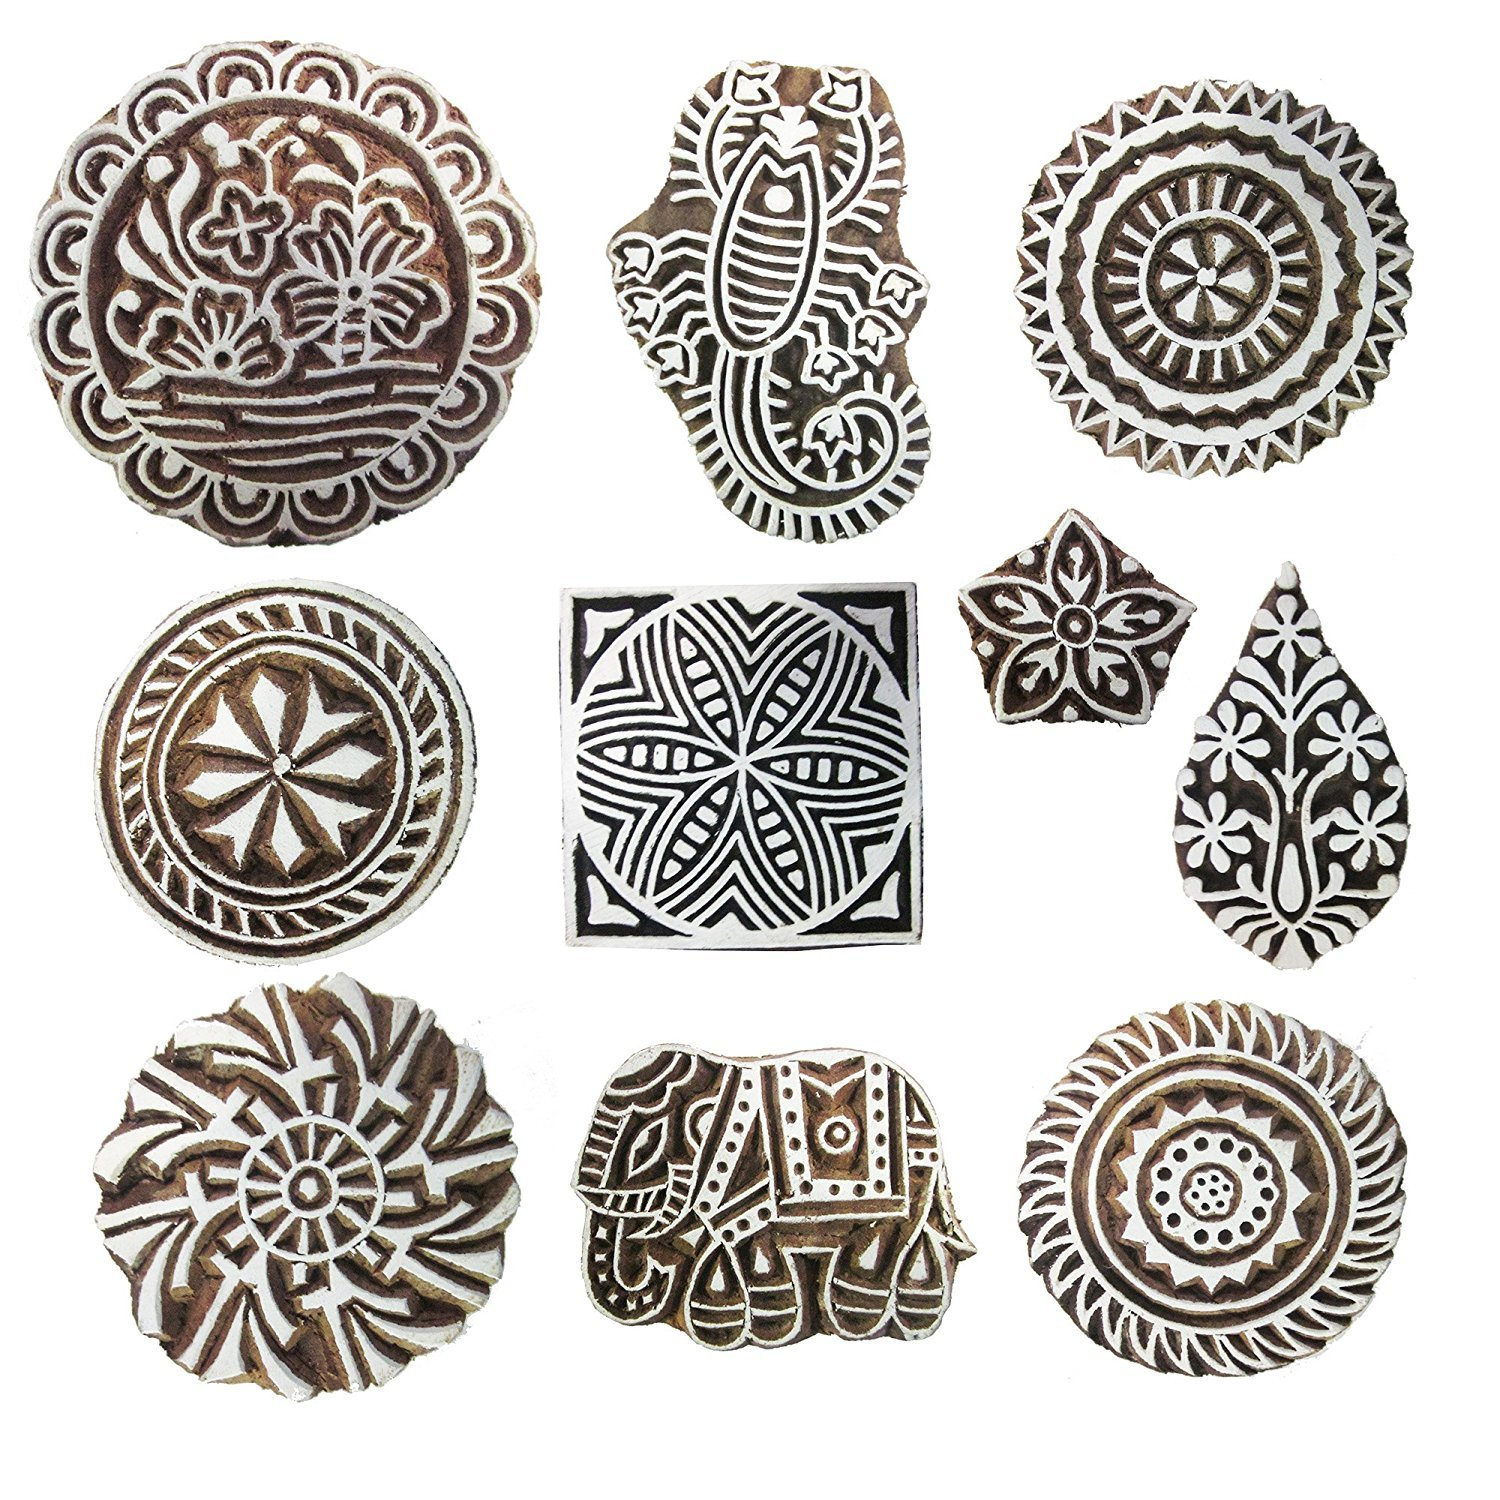 Hashcart Printing Stamp Mughal Design Wooden Blocks (Set of 6) Hand-Carved for Saree Border Making Pottery Crafts Textile Printing IK-BOOTI-SET-1111(6)